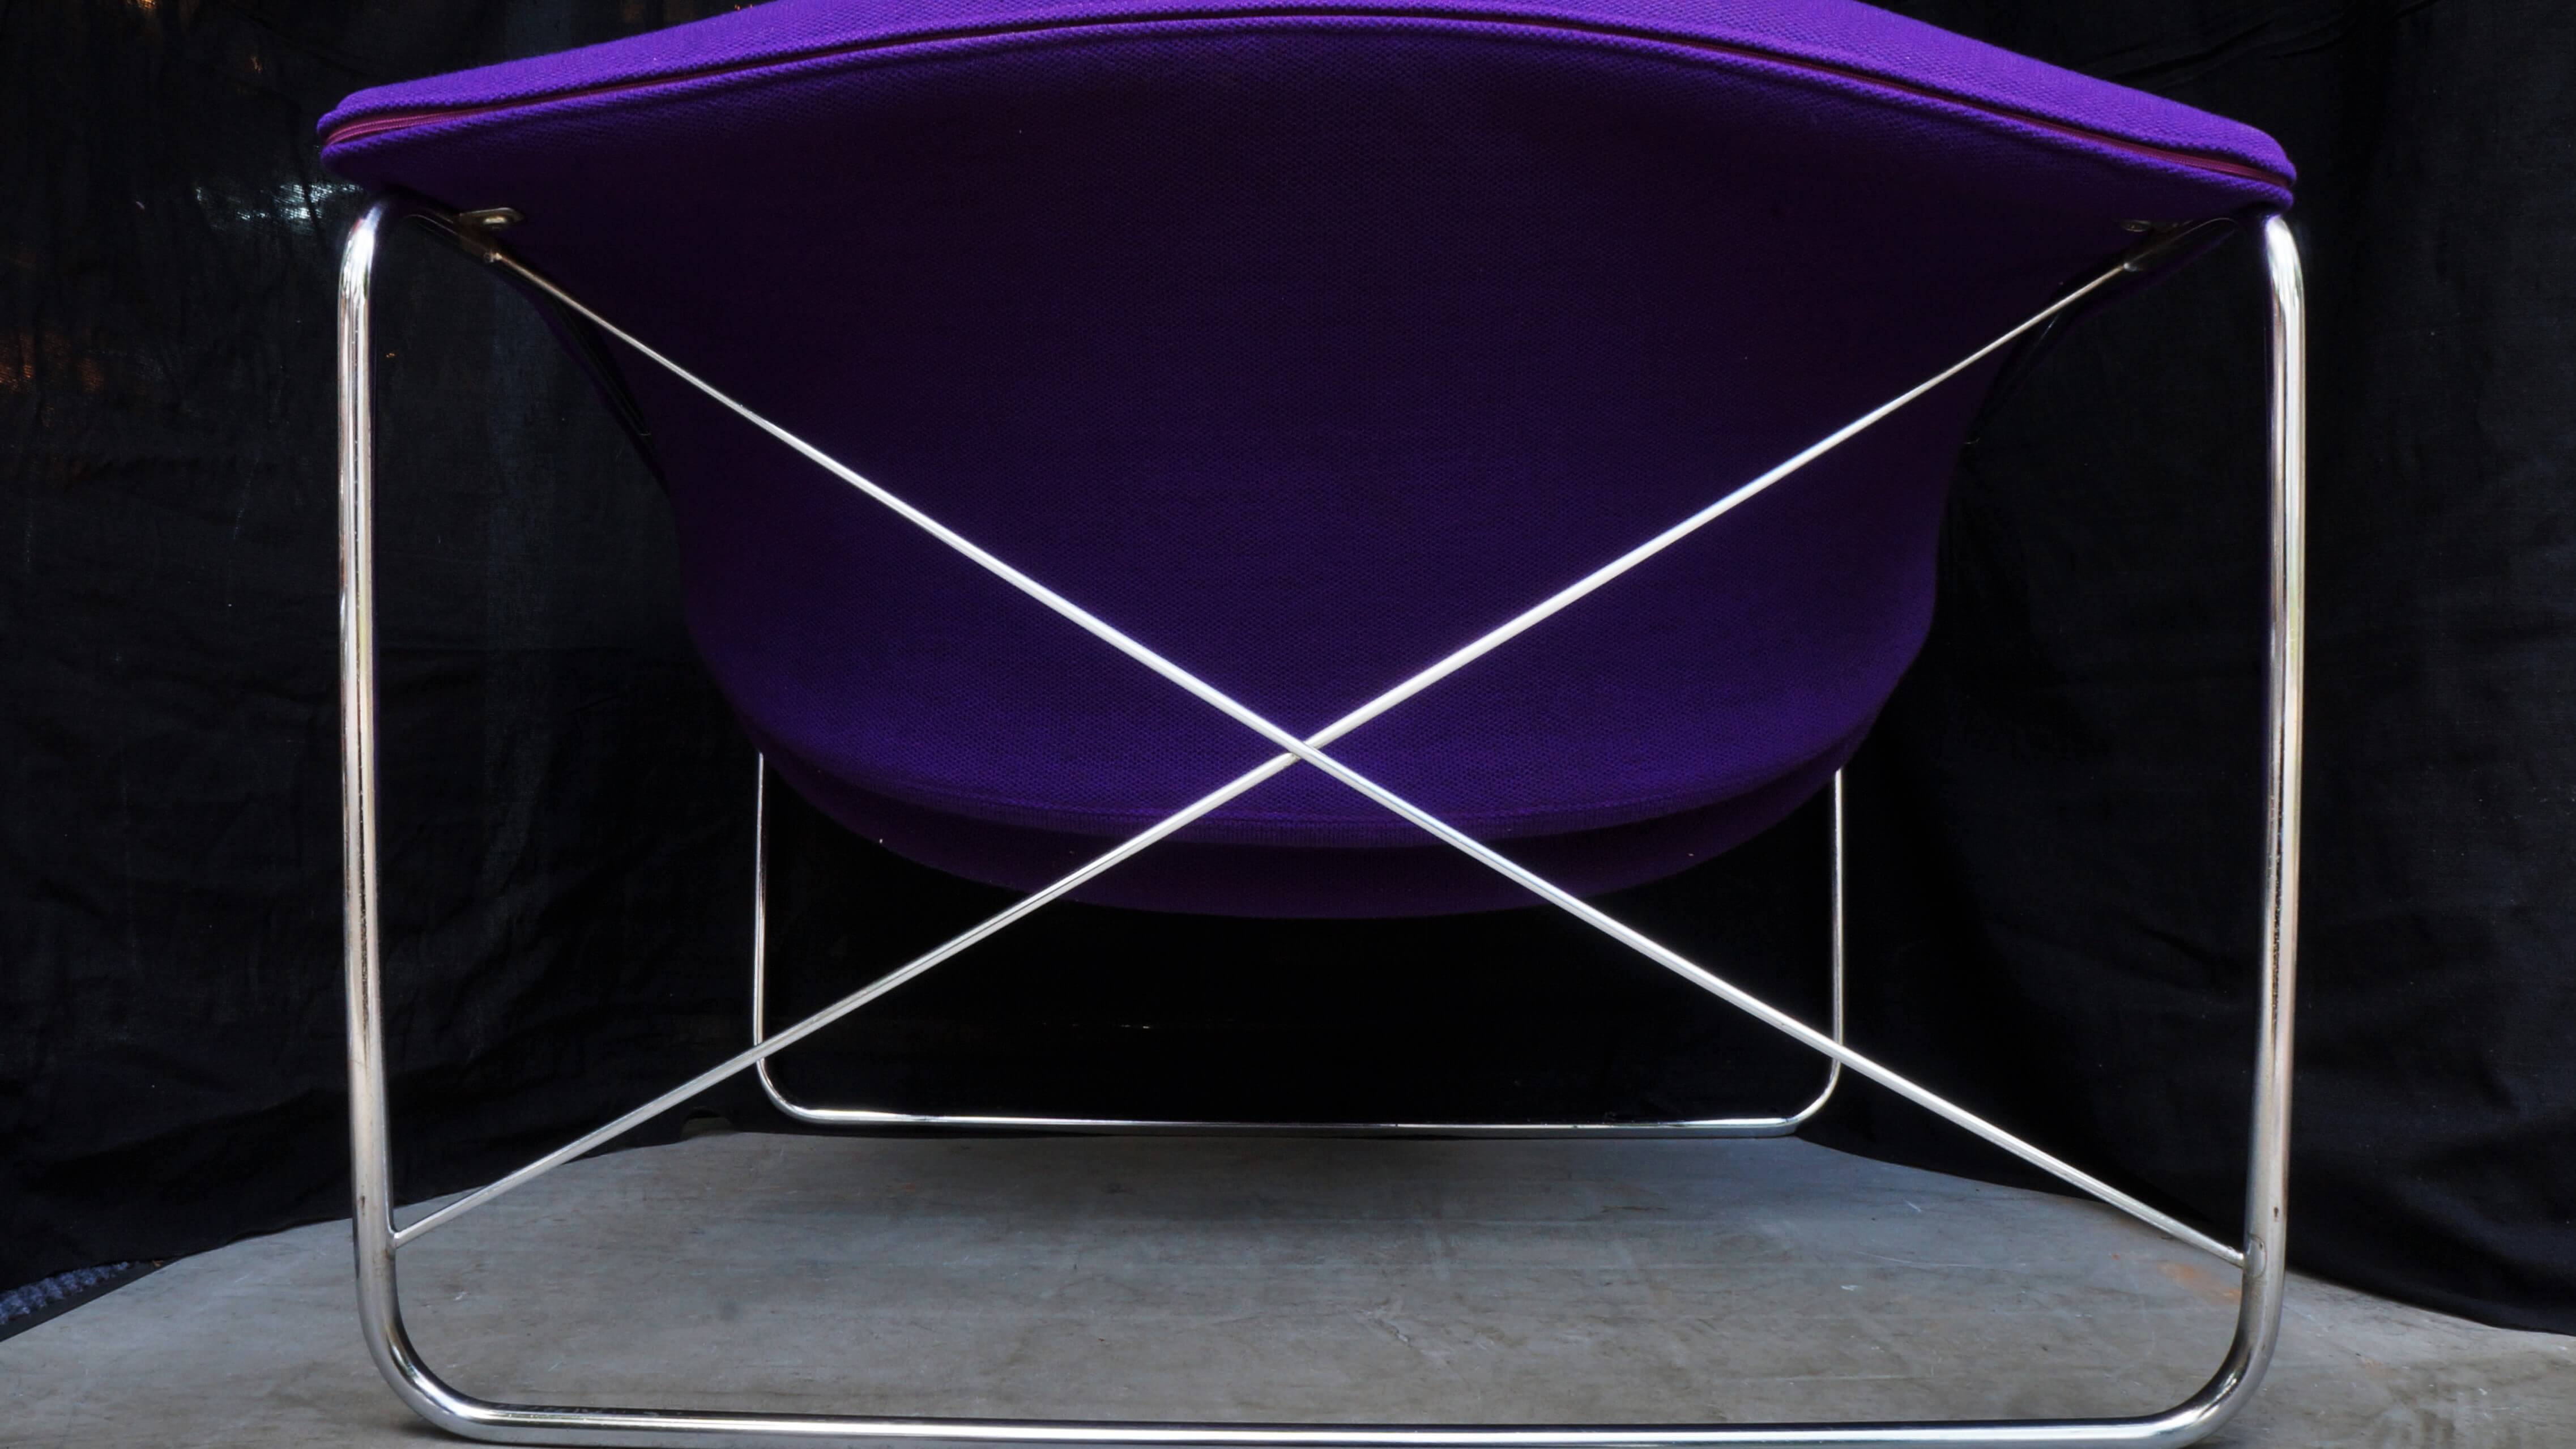 airborne Cubic Chair designed by Olivier Mourgue/エアボーン キュービックチェア オリヴィエ・ムルグ デザイン